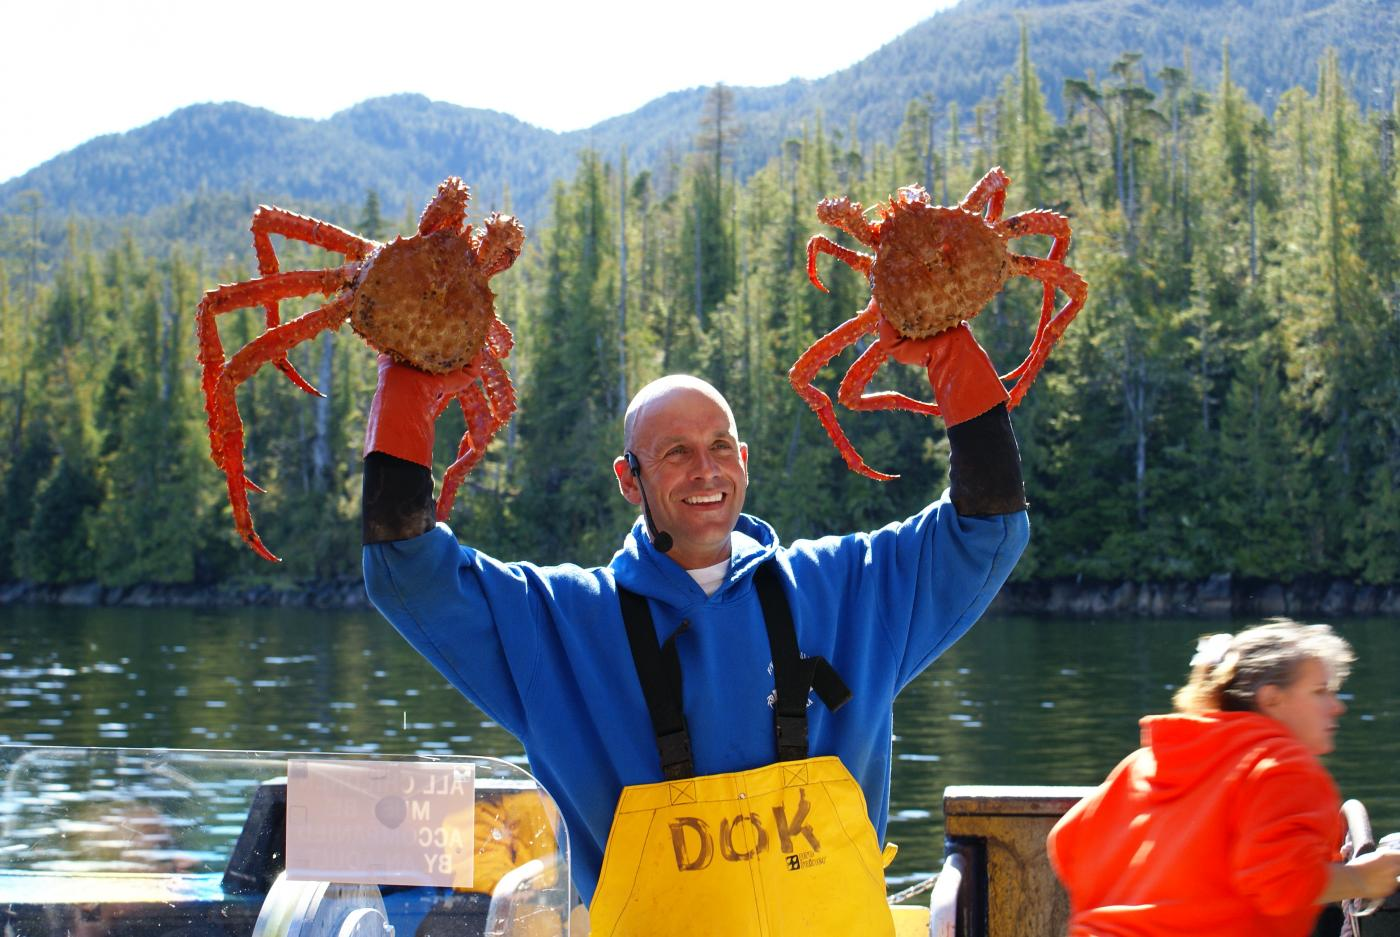 bering-sea-crab-fishermans-tour-ketchikan-ak-1.JPG